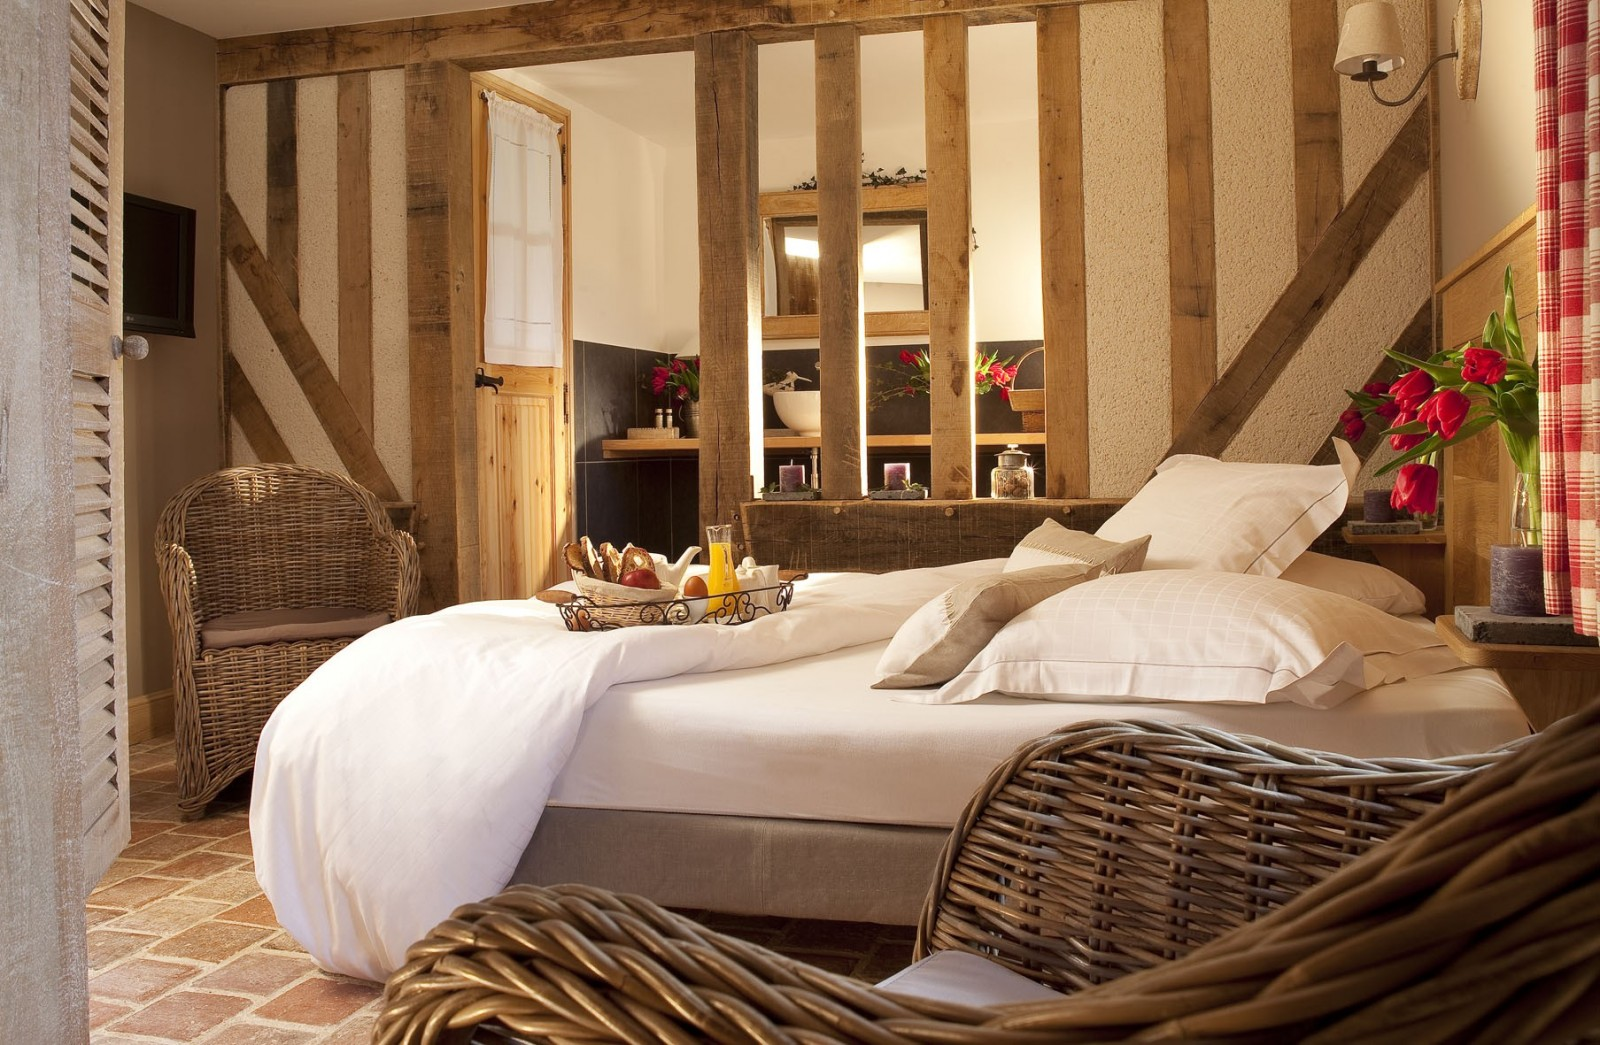 Stunning Style Chambre Campagne Gallery - House Design - marcomilone.com